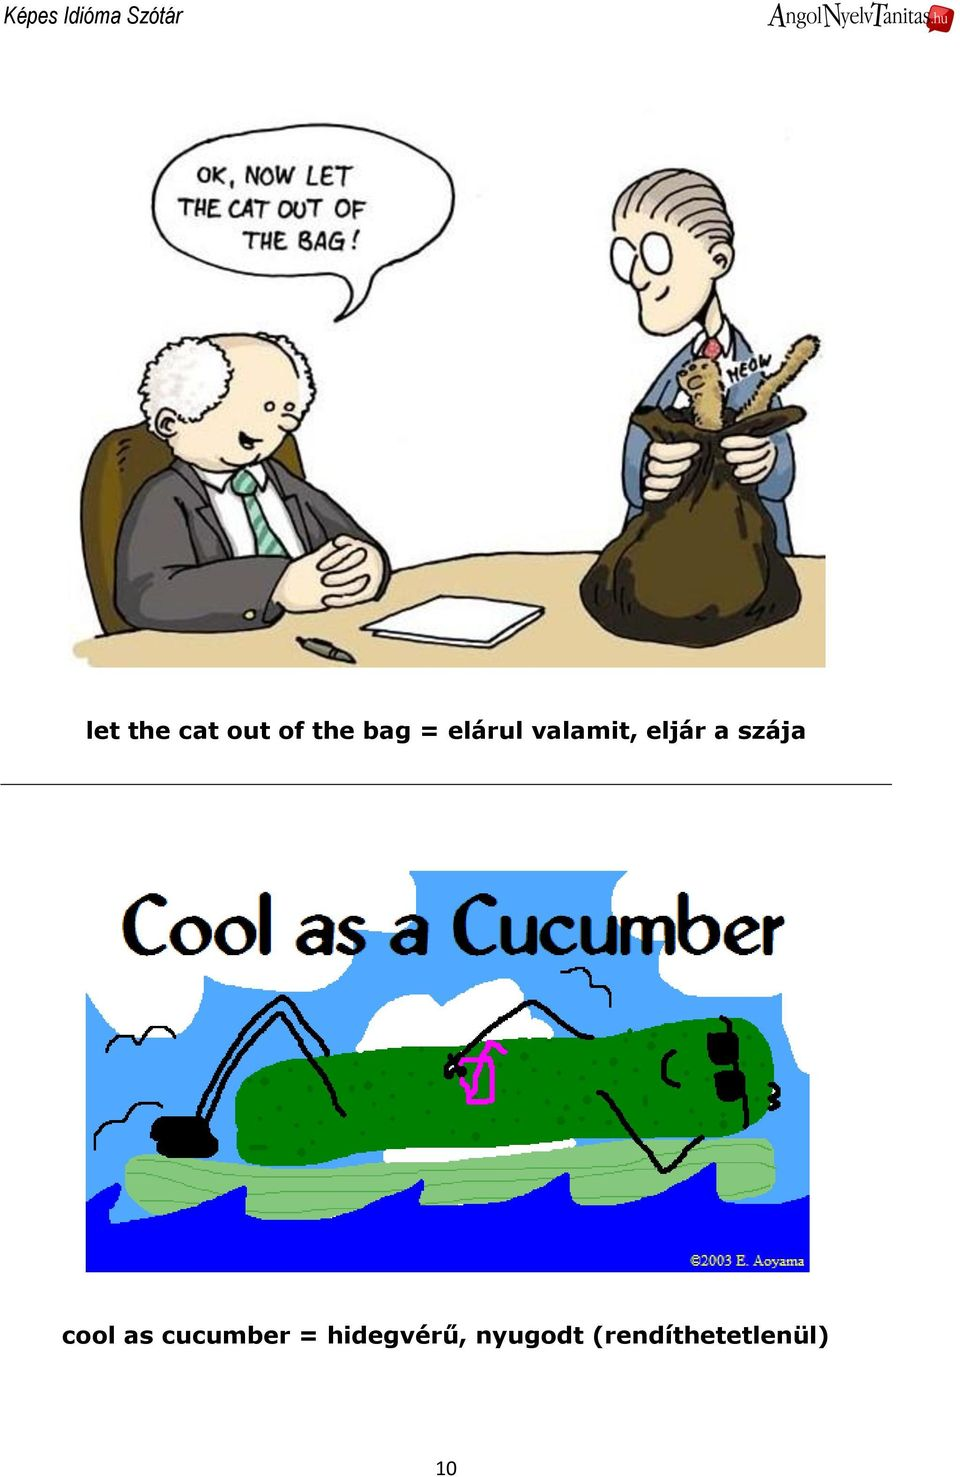 cool as cucumber = hidegvérű,